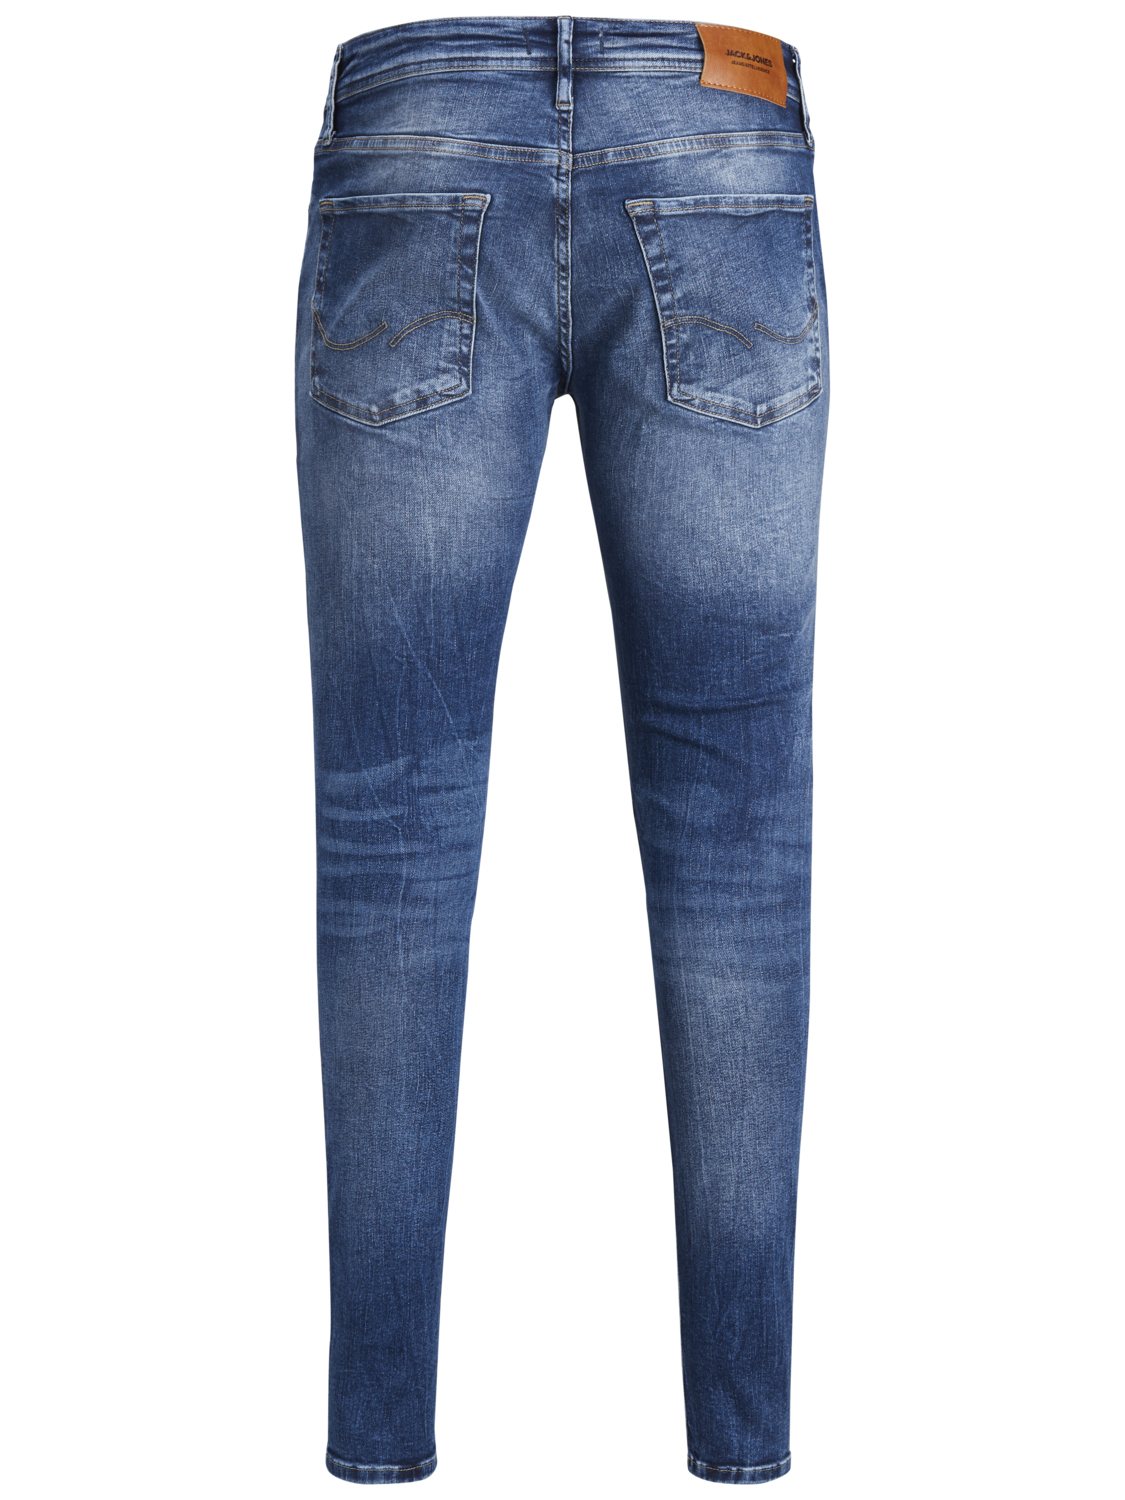 jack-jones-herren-jeans-jjitom-jjoriginal-jos-510-50sps-skinny-fit-blau-blue-denim